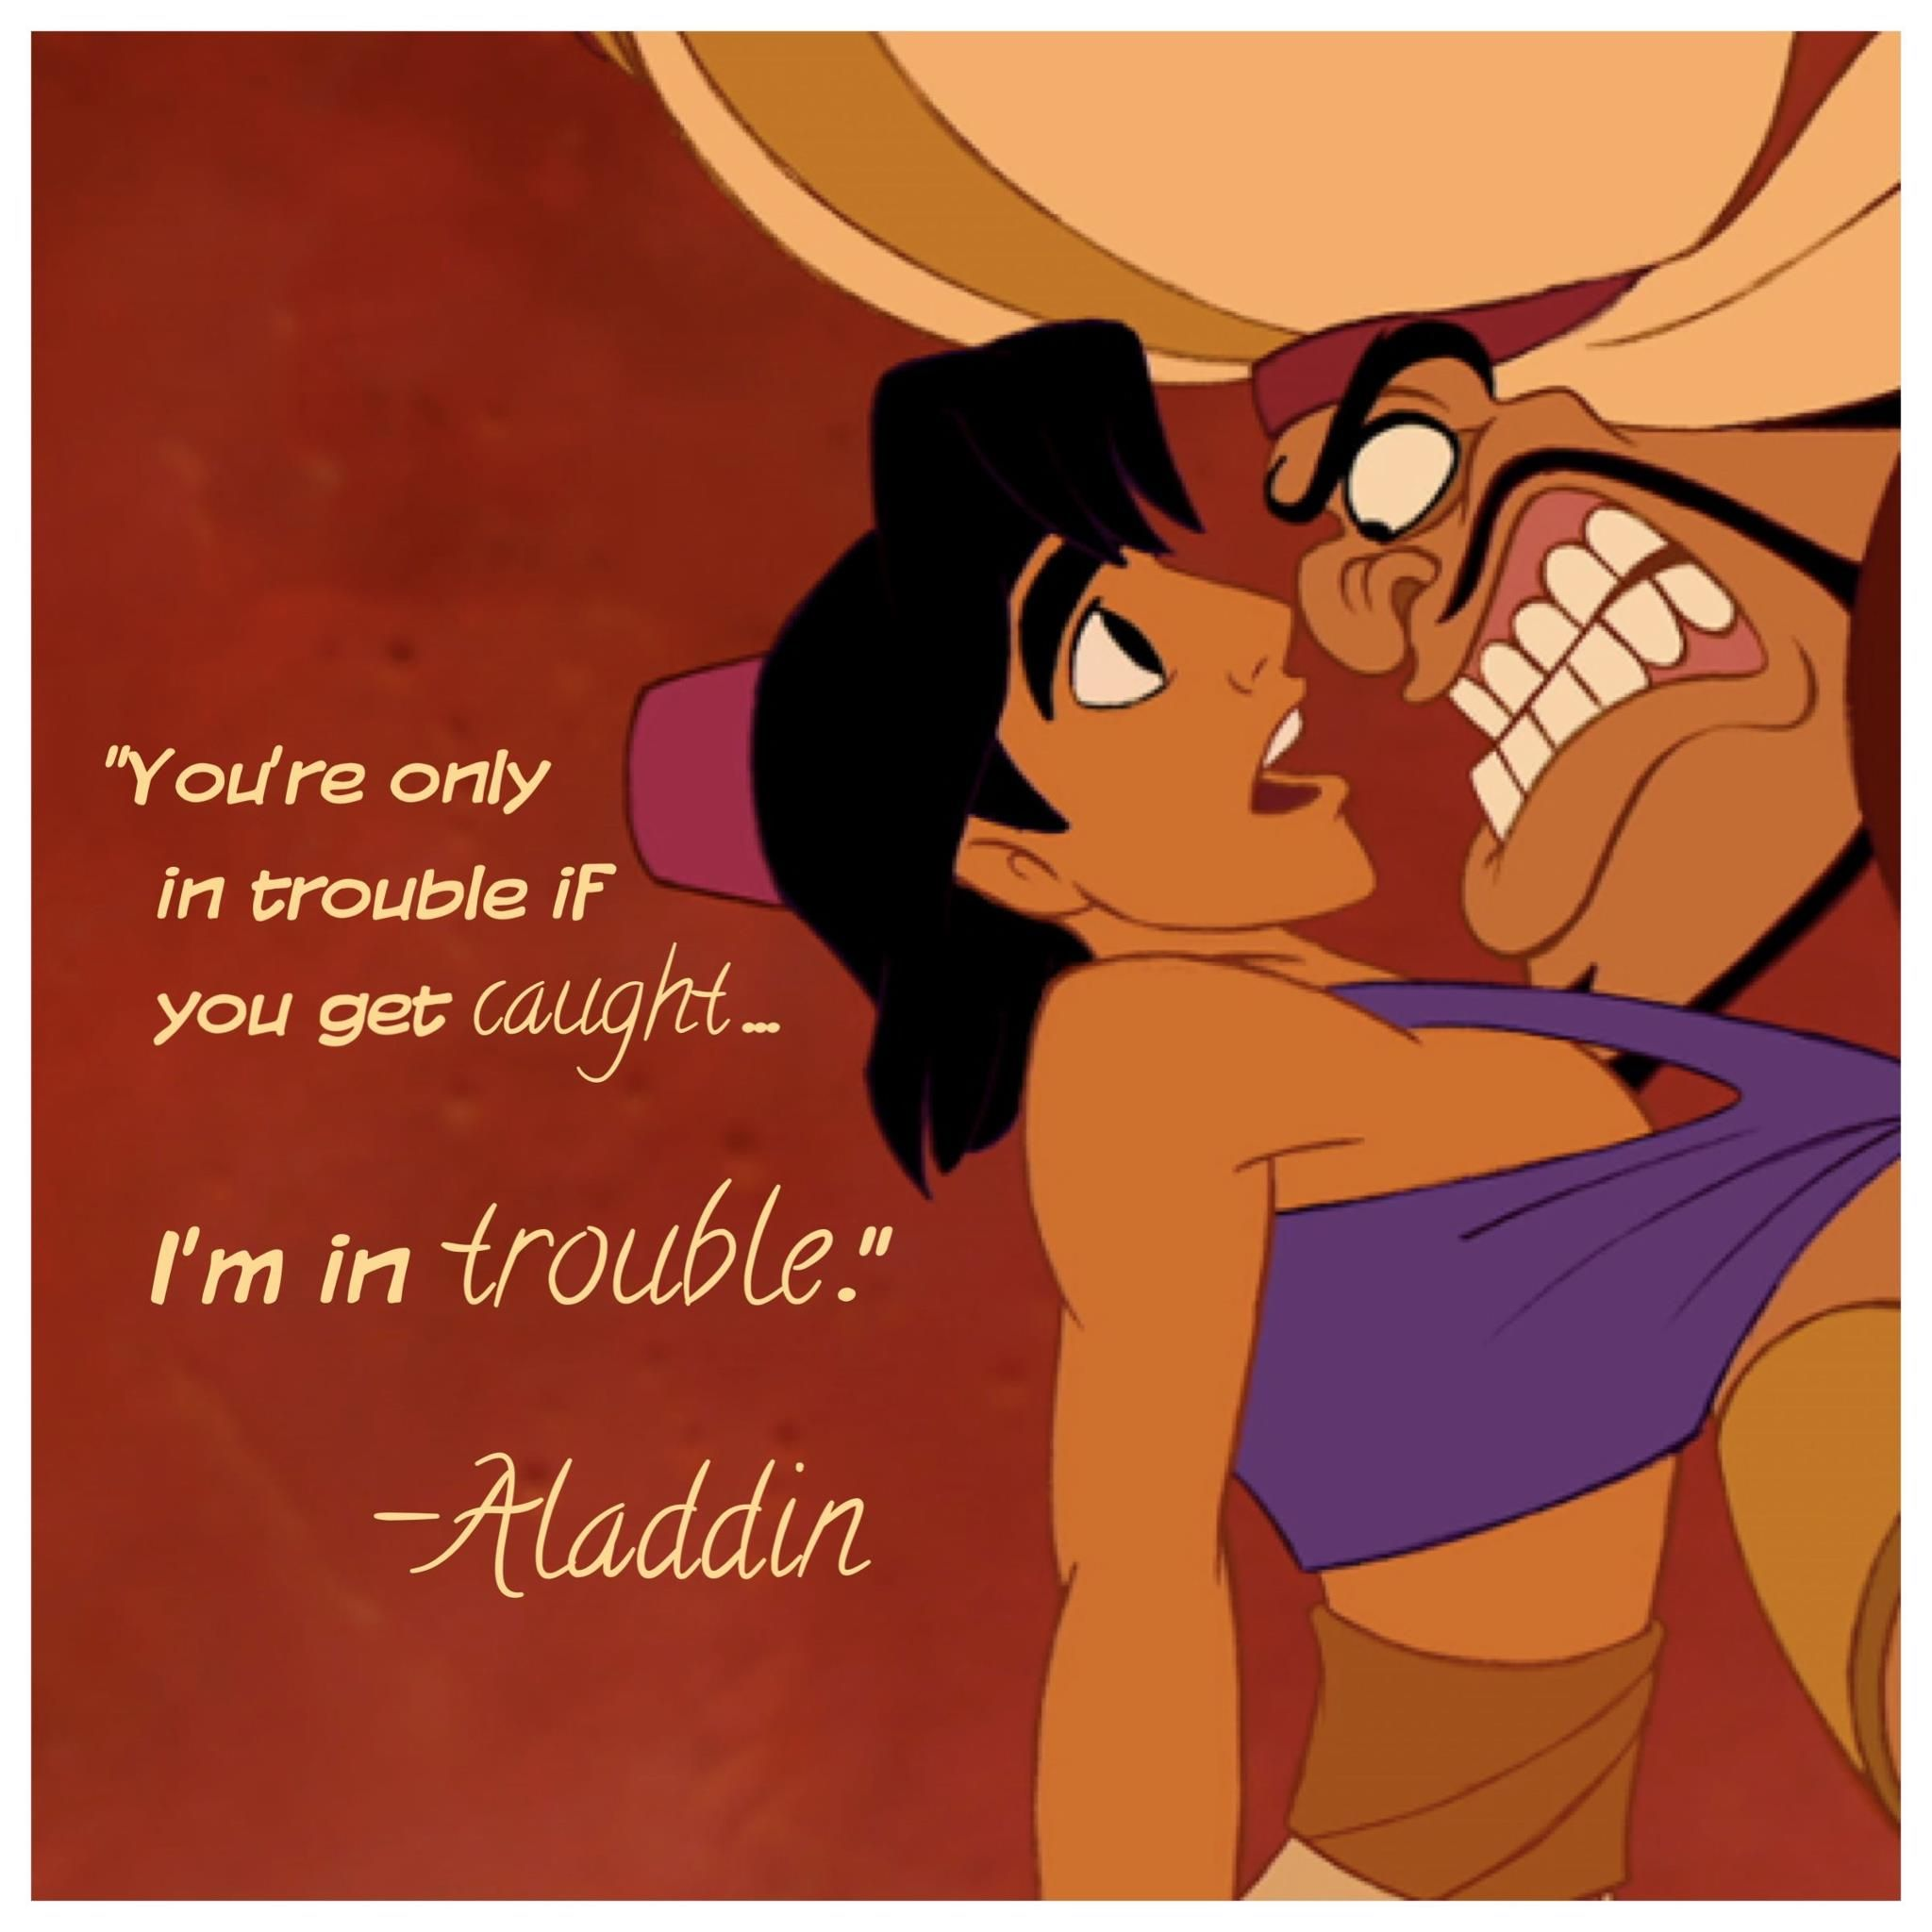 Disney Aladdin Quote Made For My Website Trouble Caught Uh